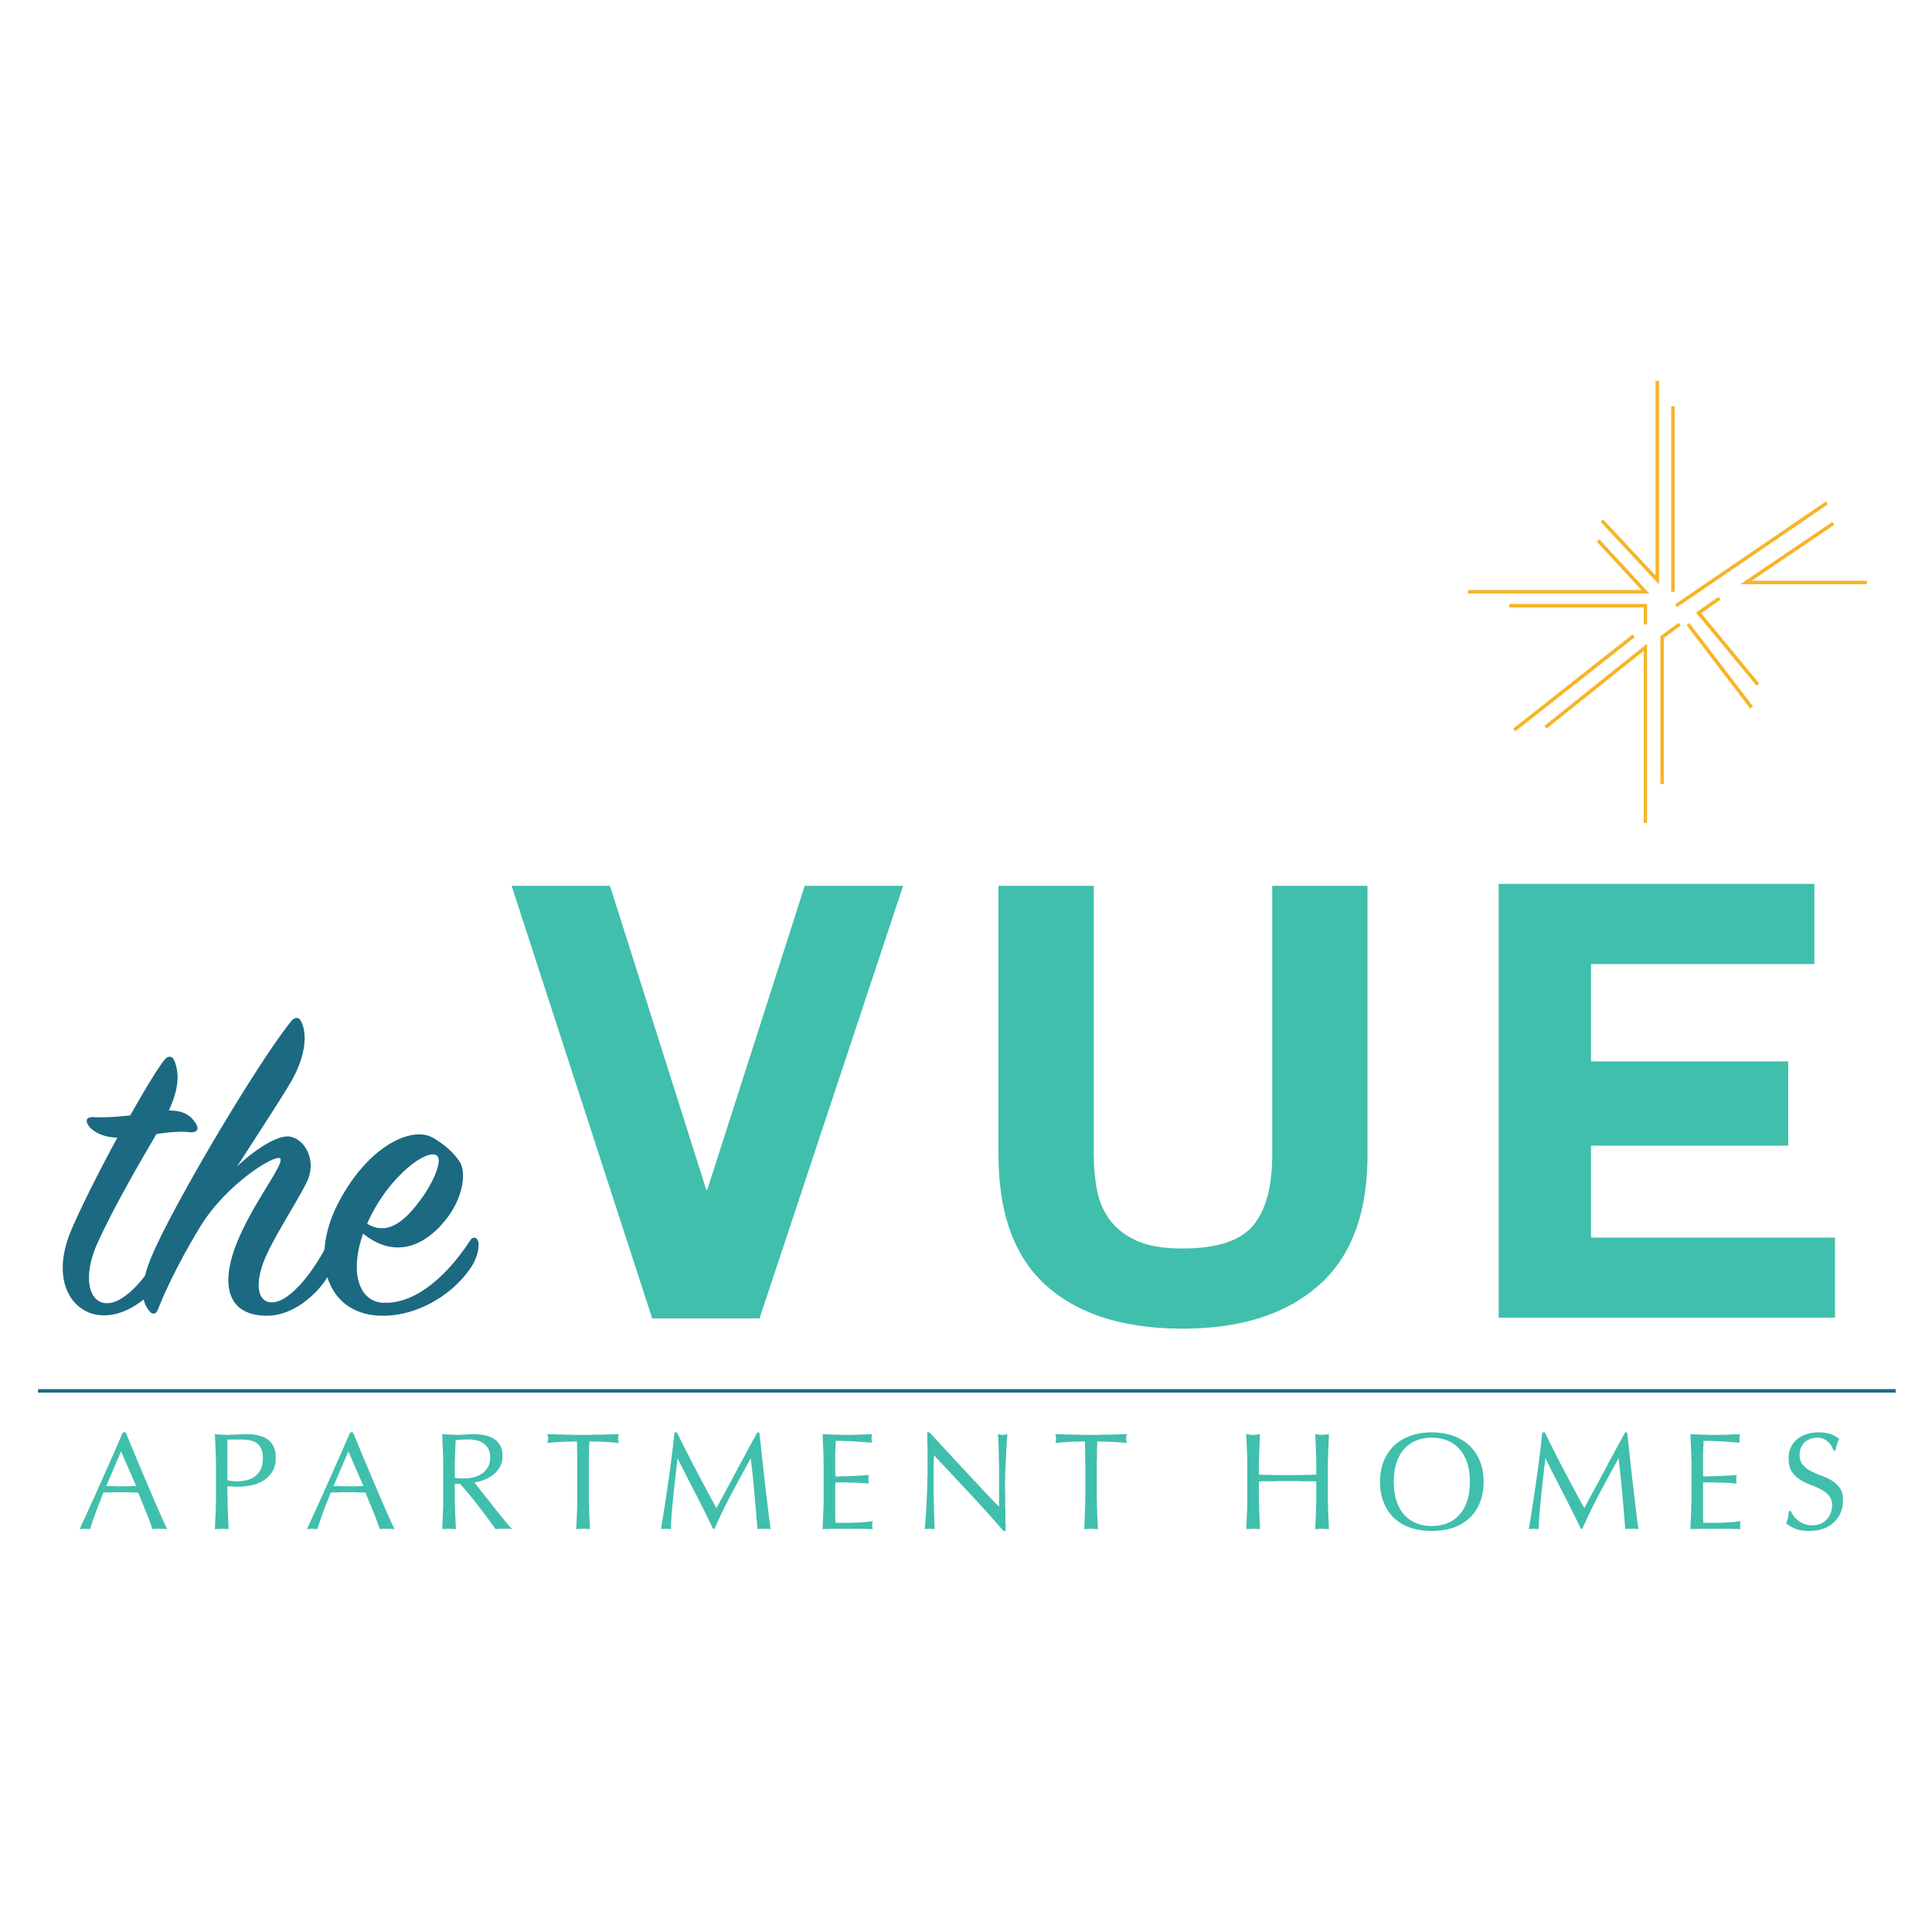 The Vue Apartment Homes